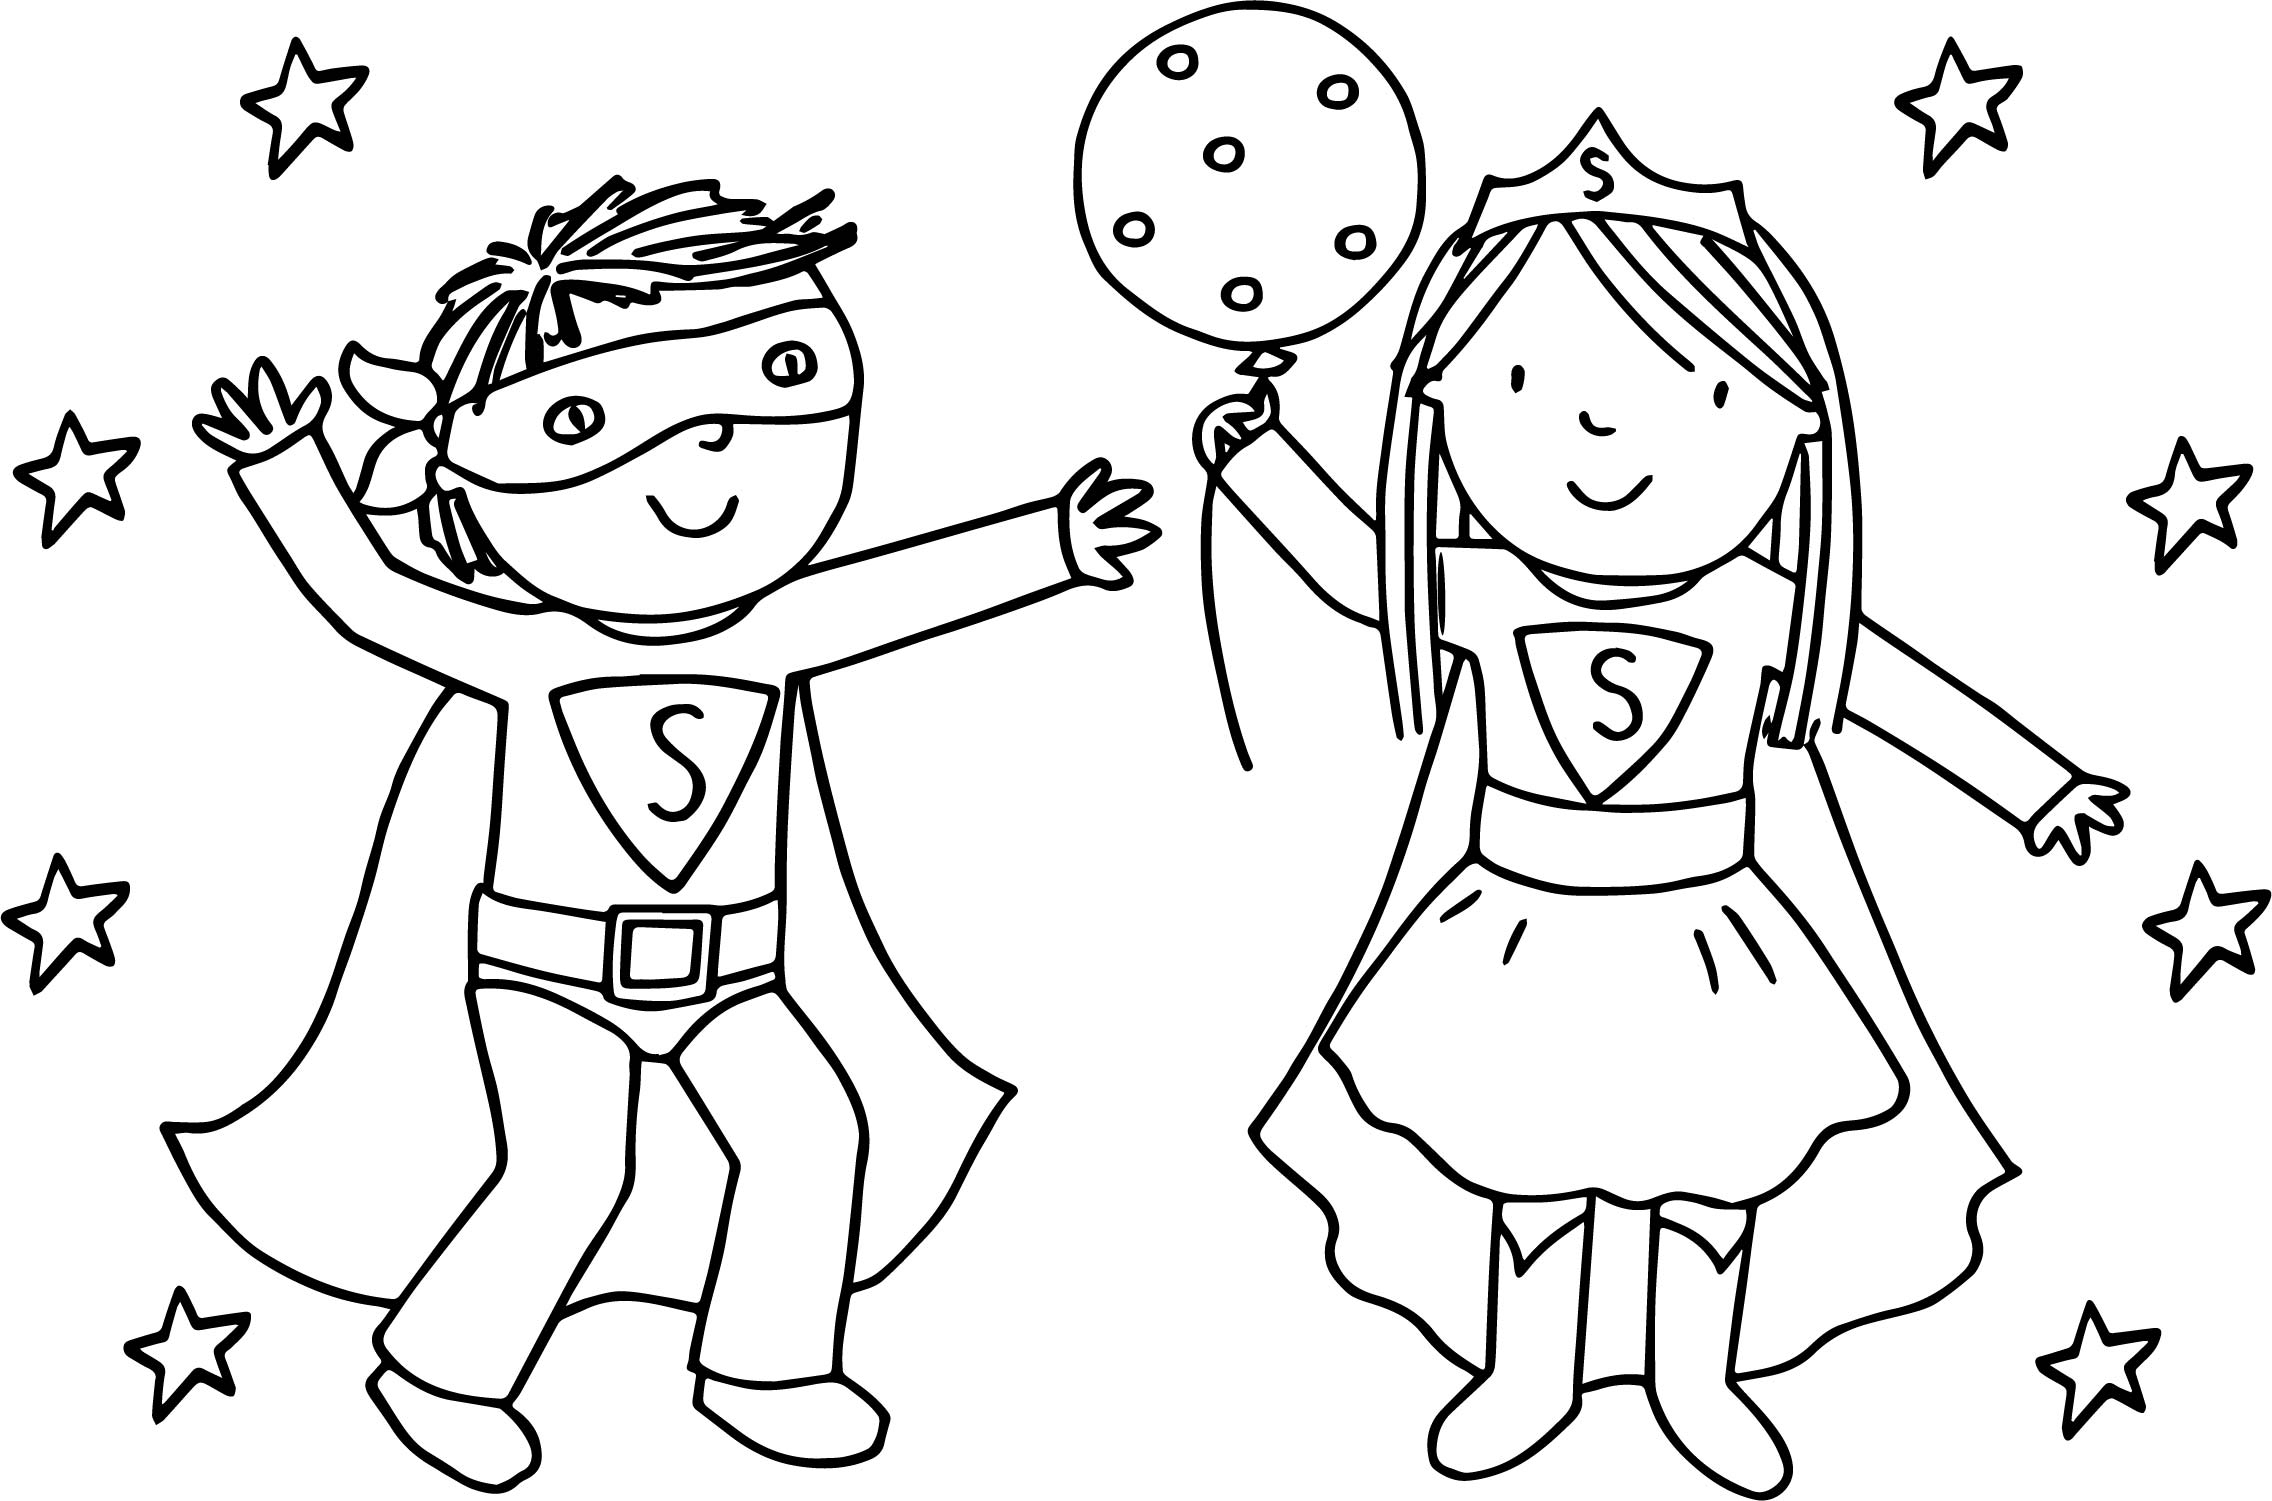 Girl Color Pages Boy And Girl Coloring Pages Coloring Pages For Boys With Free